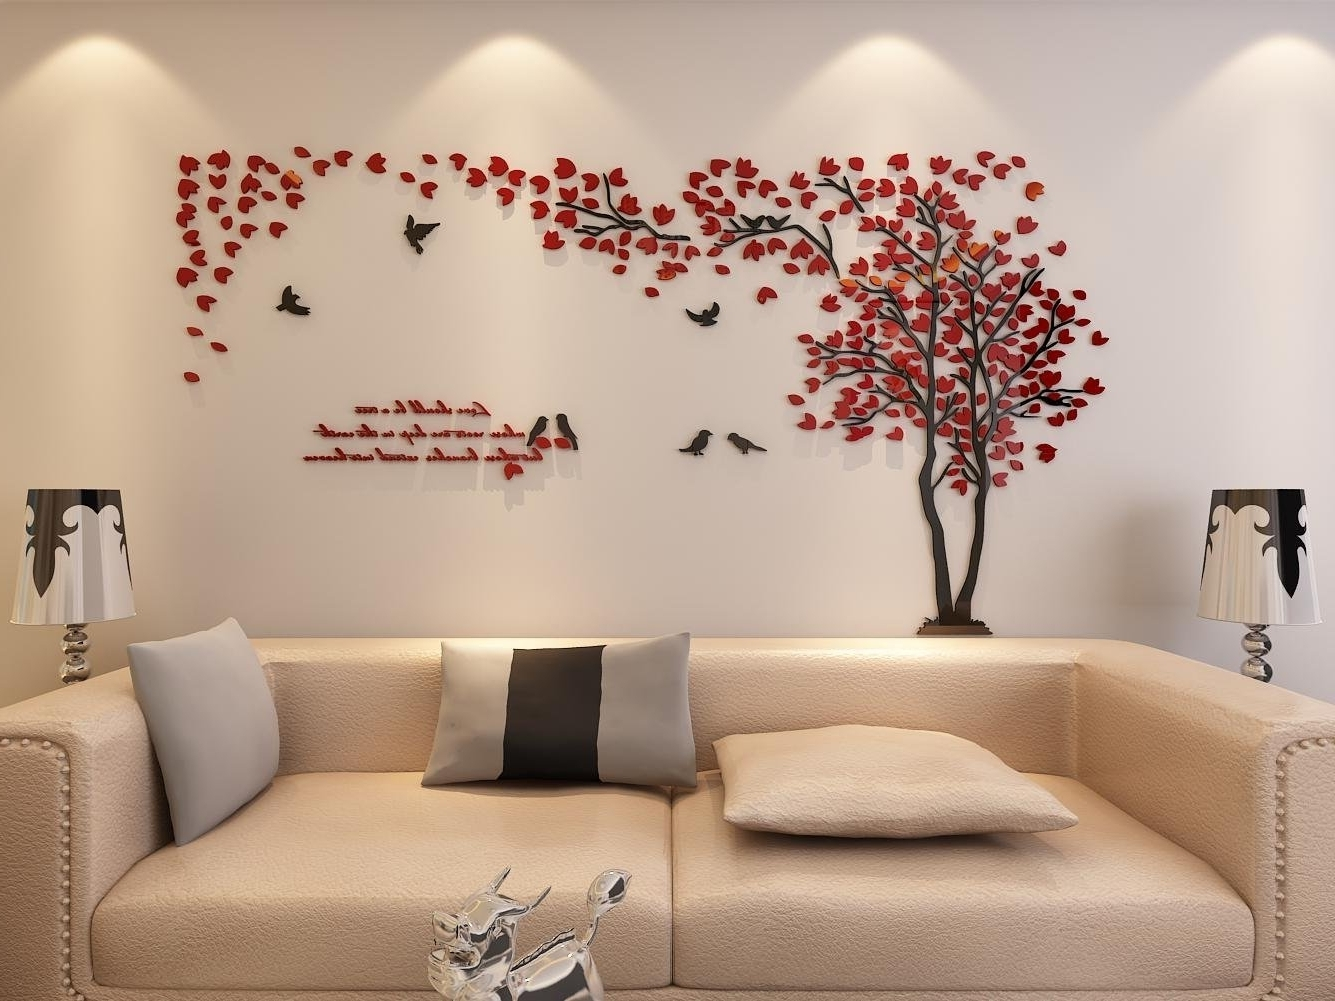 3D Tree Wall Art Intended For Widely Used Amazon: 3D Couple Tree Wall Murals For Living Room Bedroom (View 1 of 15)